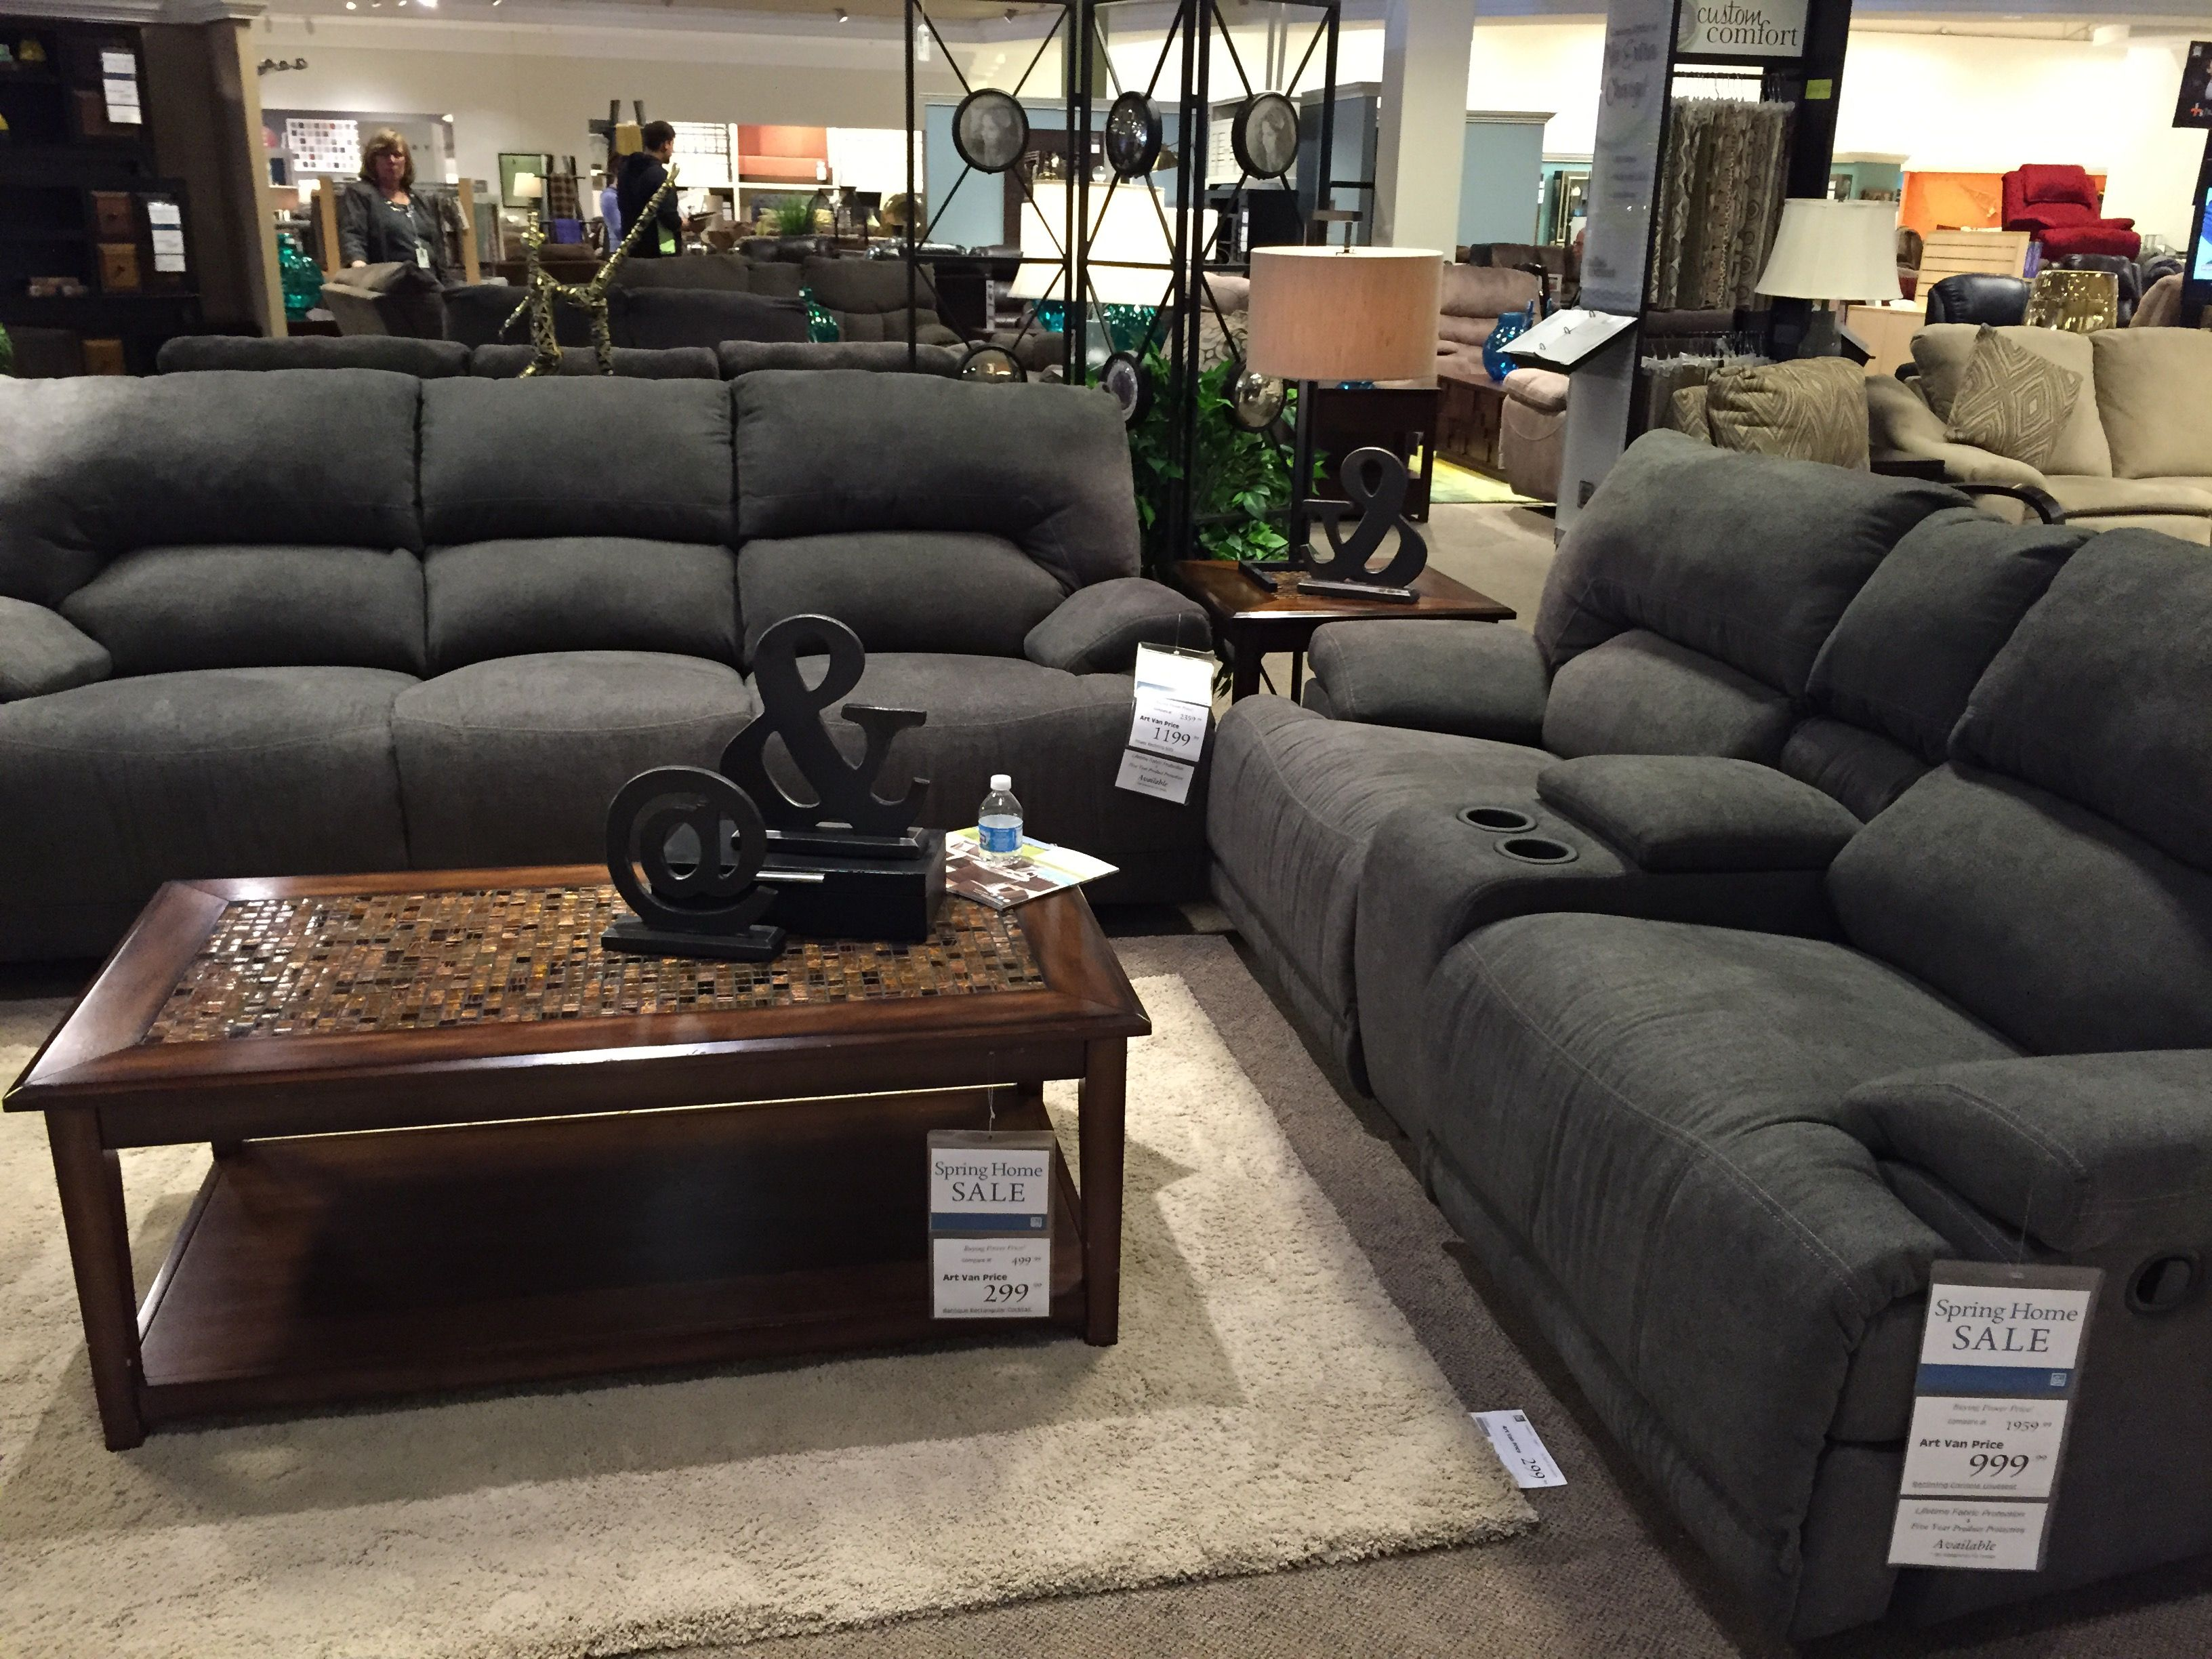 Shelby collection from Art Van Power Recline Sofa and loveseat w